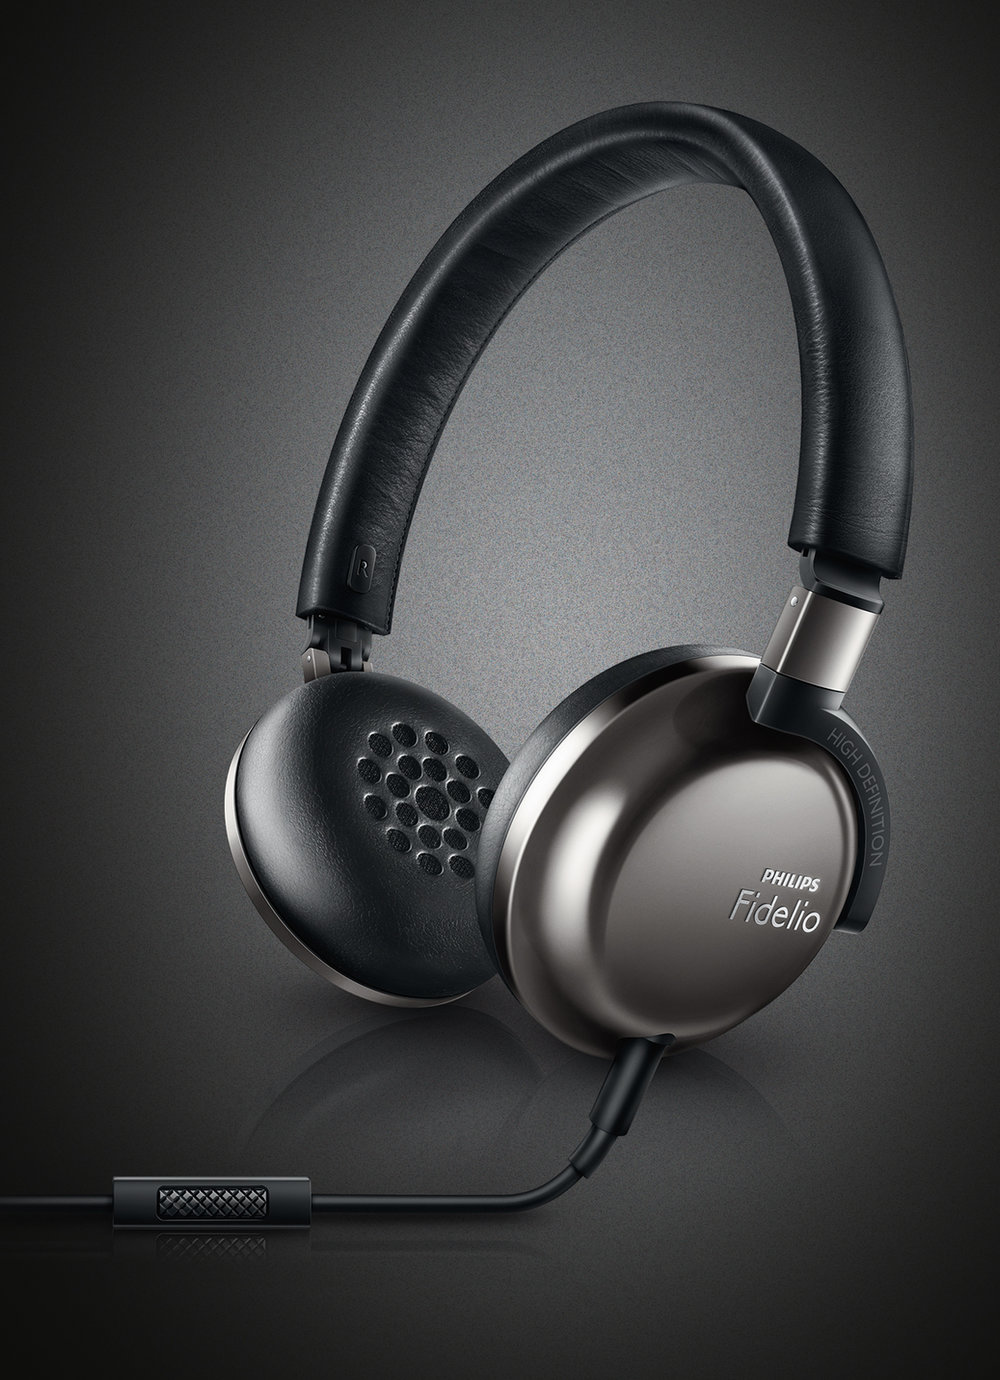 PHILIPS Fidelio F1 is a foldable and compact size headphones with premium material quality and incredible acoustic performance. Extreme comfort leather headband and memory foam ear cushion bring music entertainment to a new level.